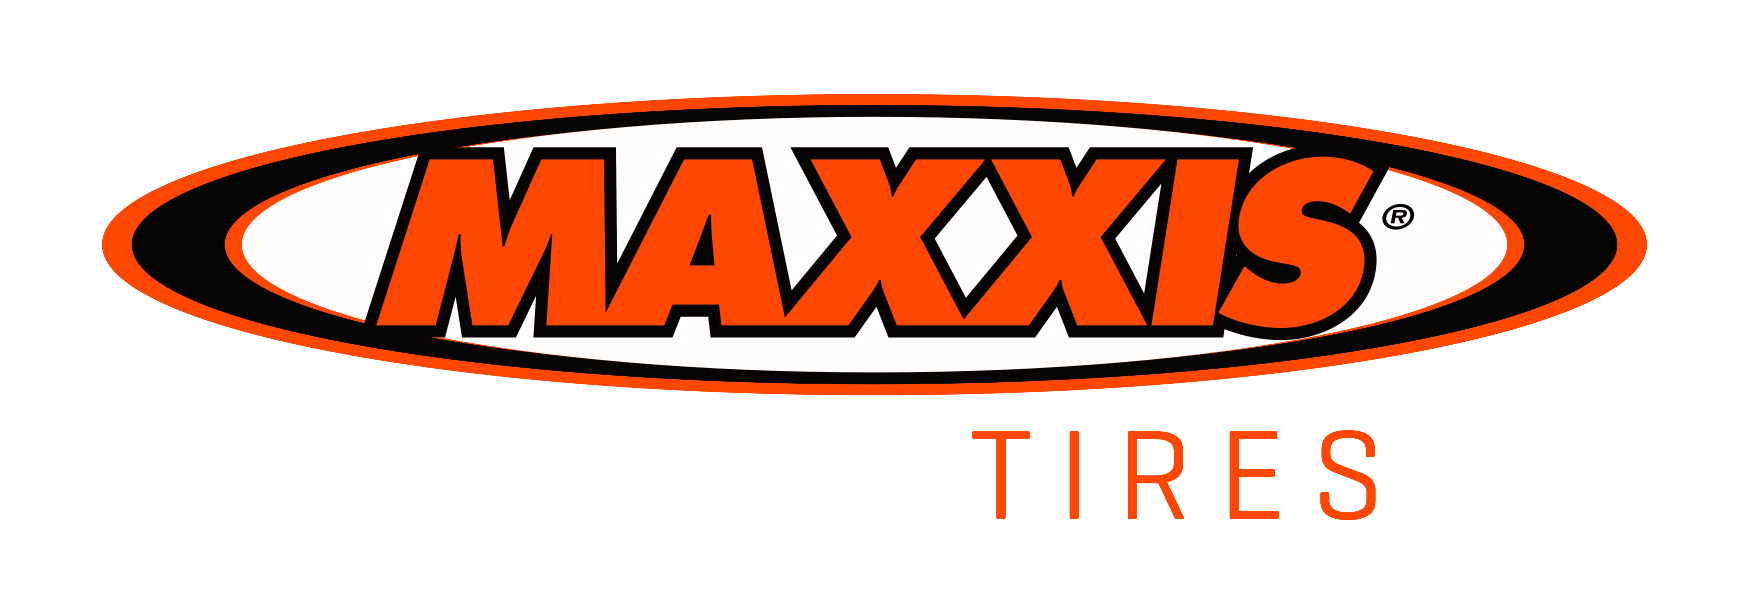 maxxis-oval-tires